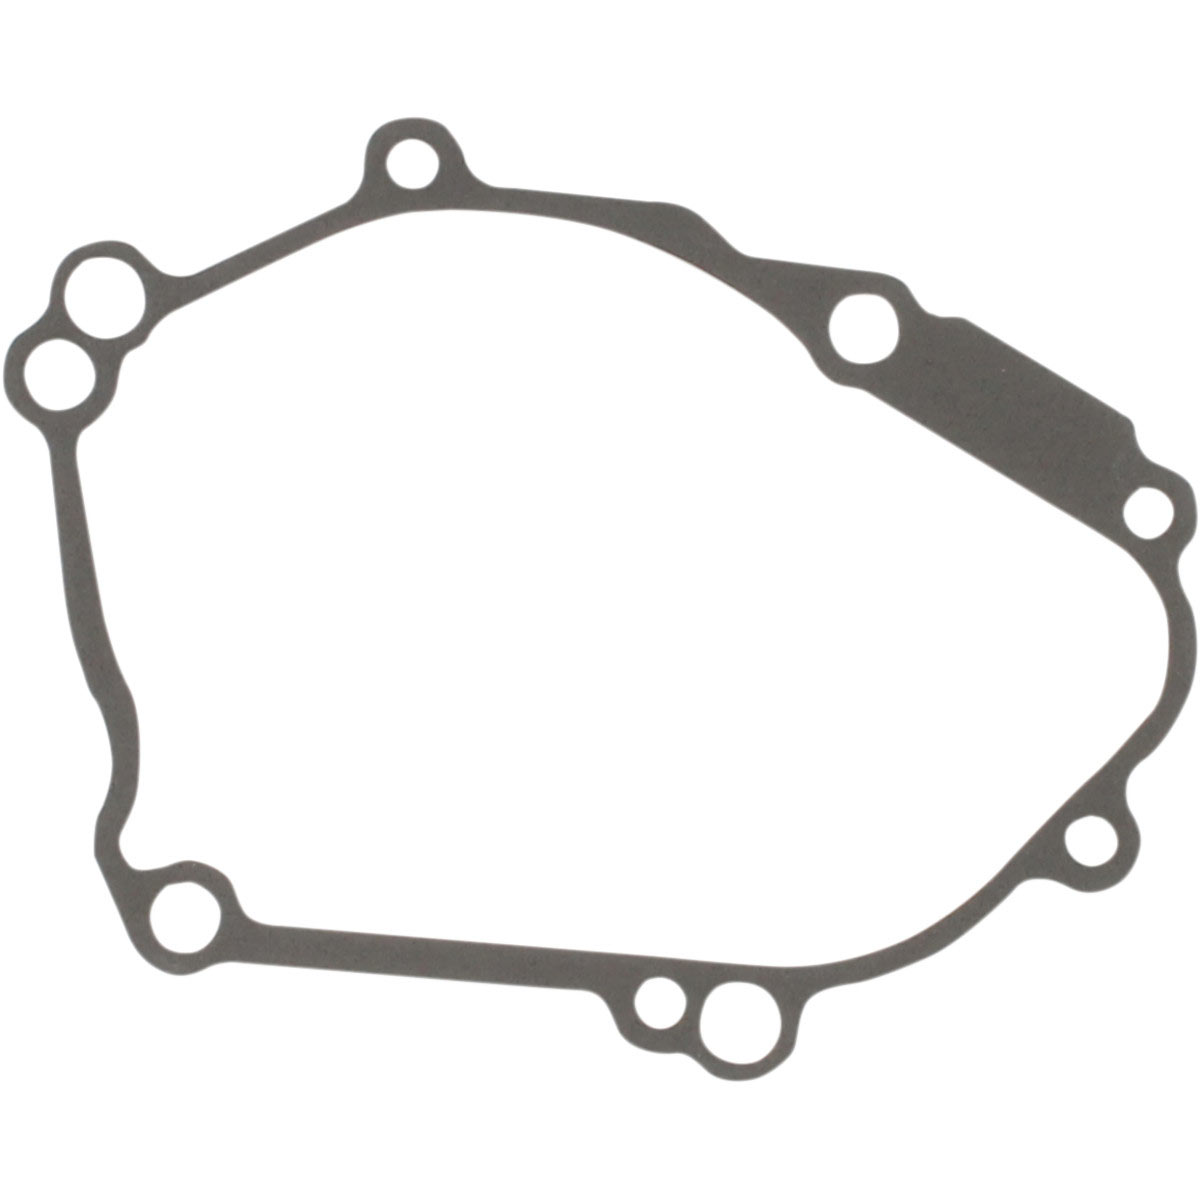 Cometic Stator Magneto Cover Gasket For Yzf R1 04 08